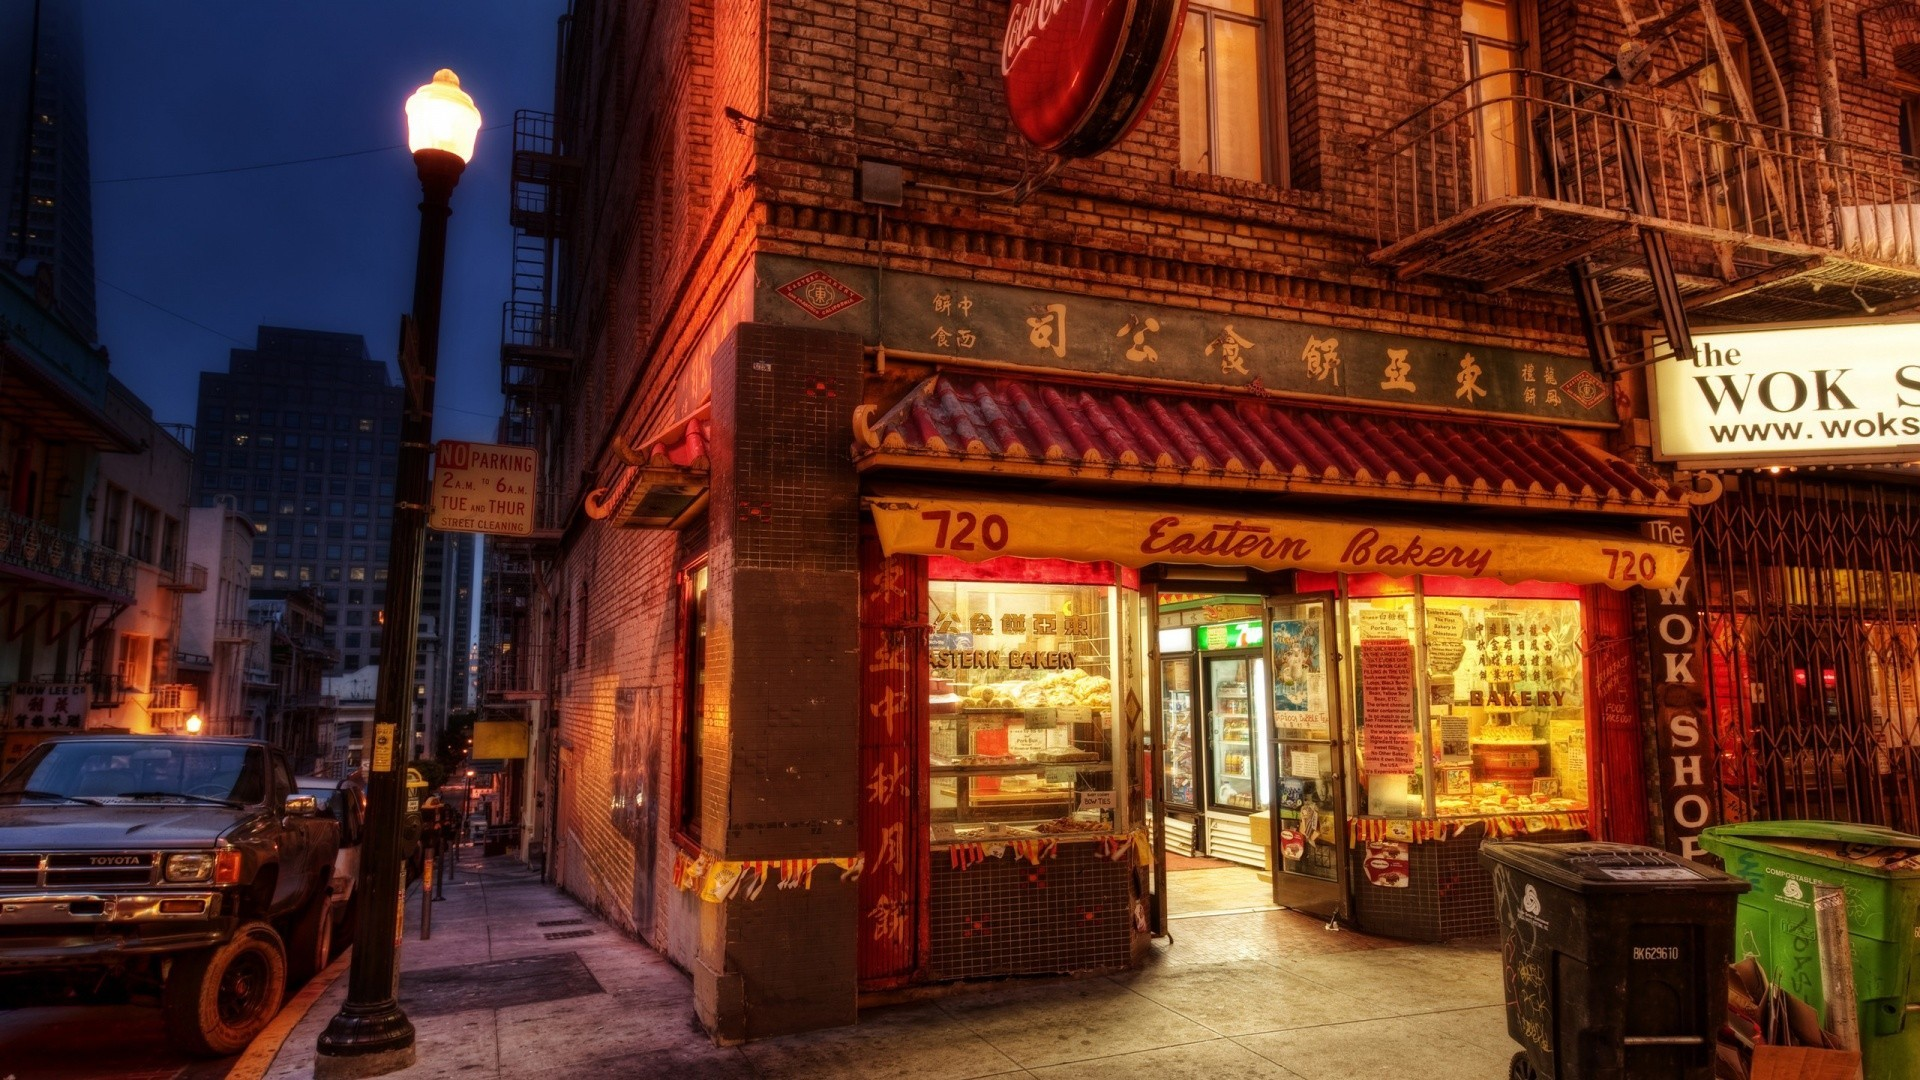 1920x1080 Bakery Chinatown New York China Town Street Store City Lights Background  Pictures -